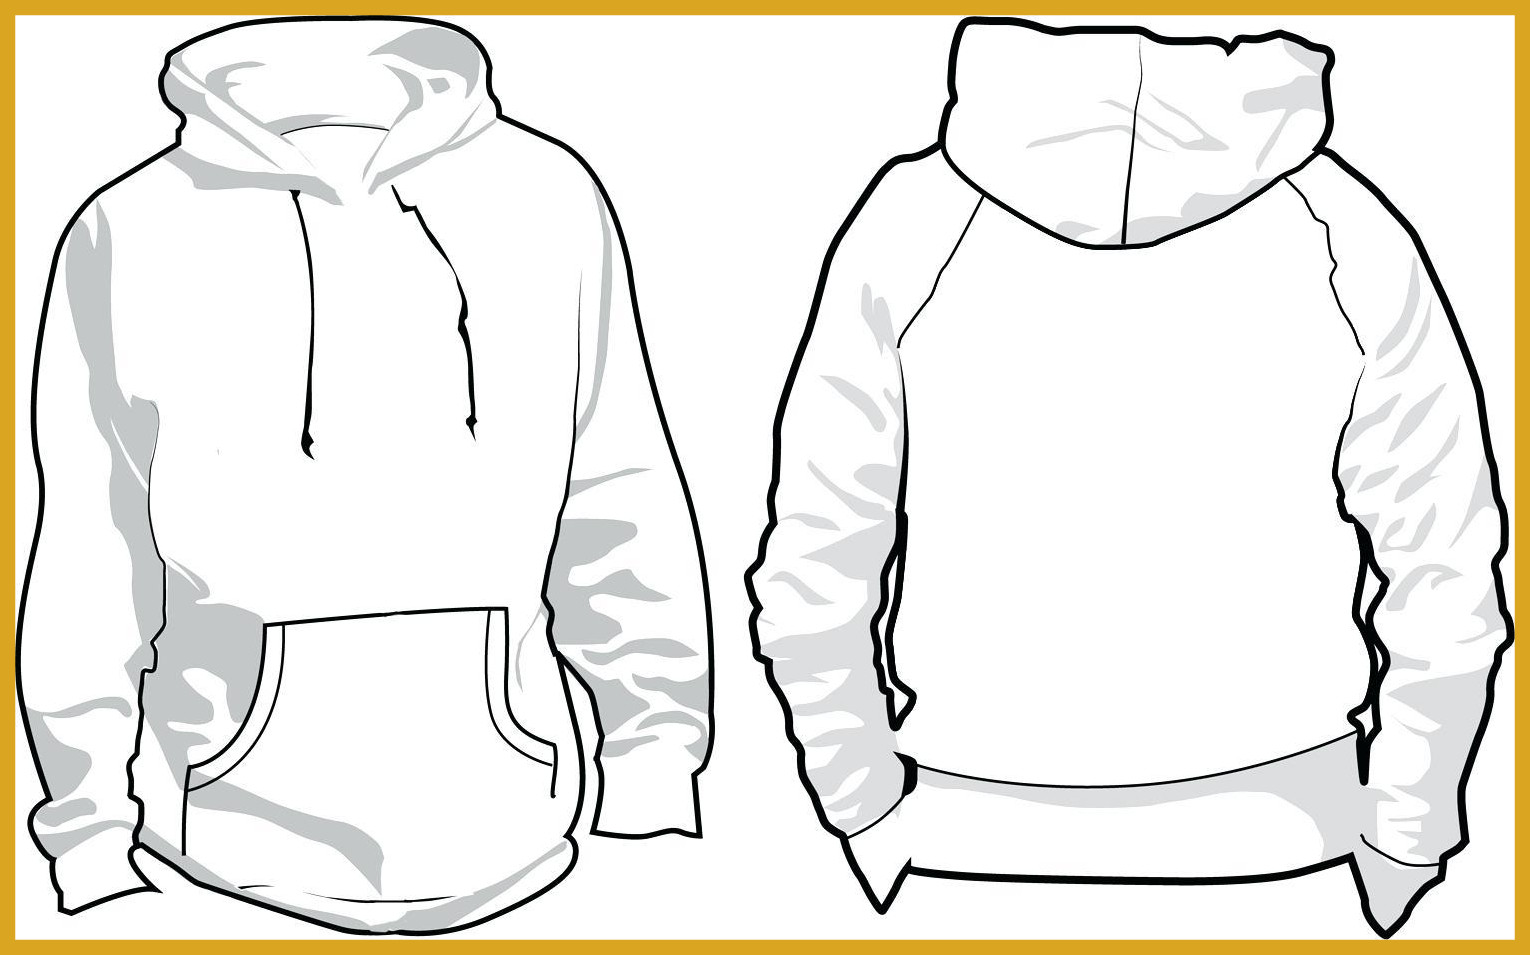 Hoodie clipart. Astonishing men u clip